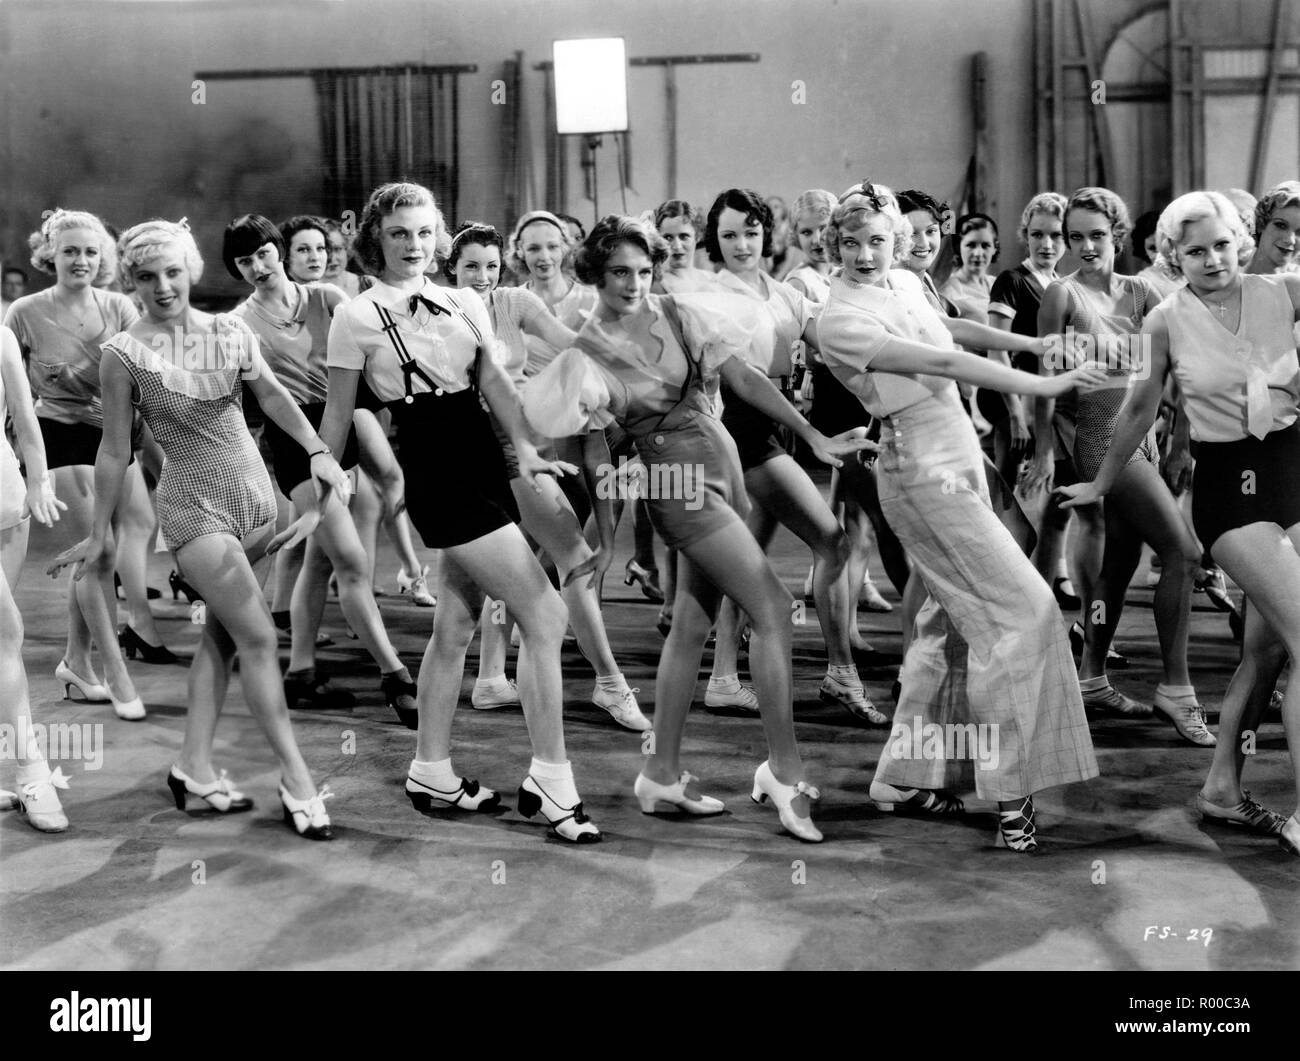 42nd Street  Year : 1933 USA Director : Lloyd Bacon Ginger Rogers, Loretta Andrews, Joan Barclay, Muriel Barrett, Lynn Browning, Edna Callahan, Maxine Cantway, Margaret Carthew, Virginia Dabney, Ruth Eddings, Patsy Farnum, June Glory, Mary Halsey, Ann Hovey, Alice Jans, Ruby Keeler, Una Merkel, Mildred Dixon - Stock Image